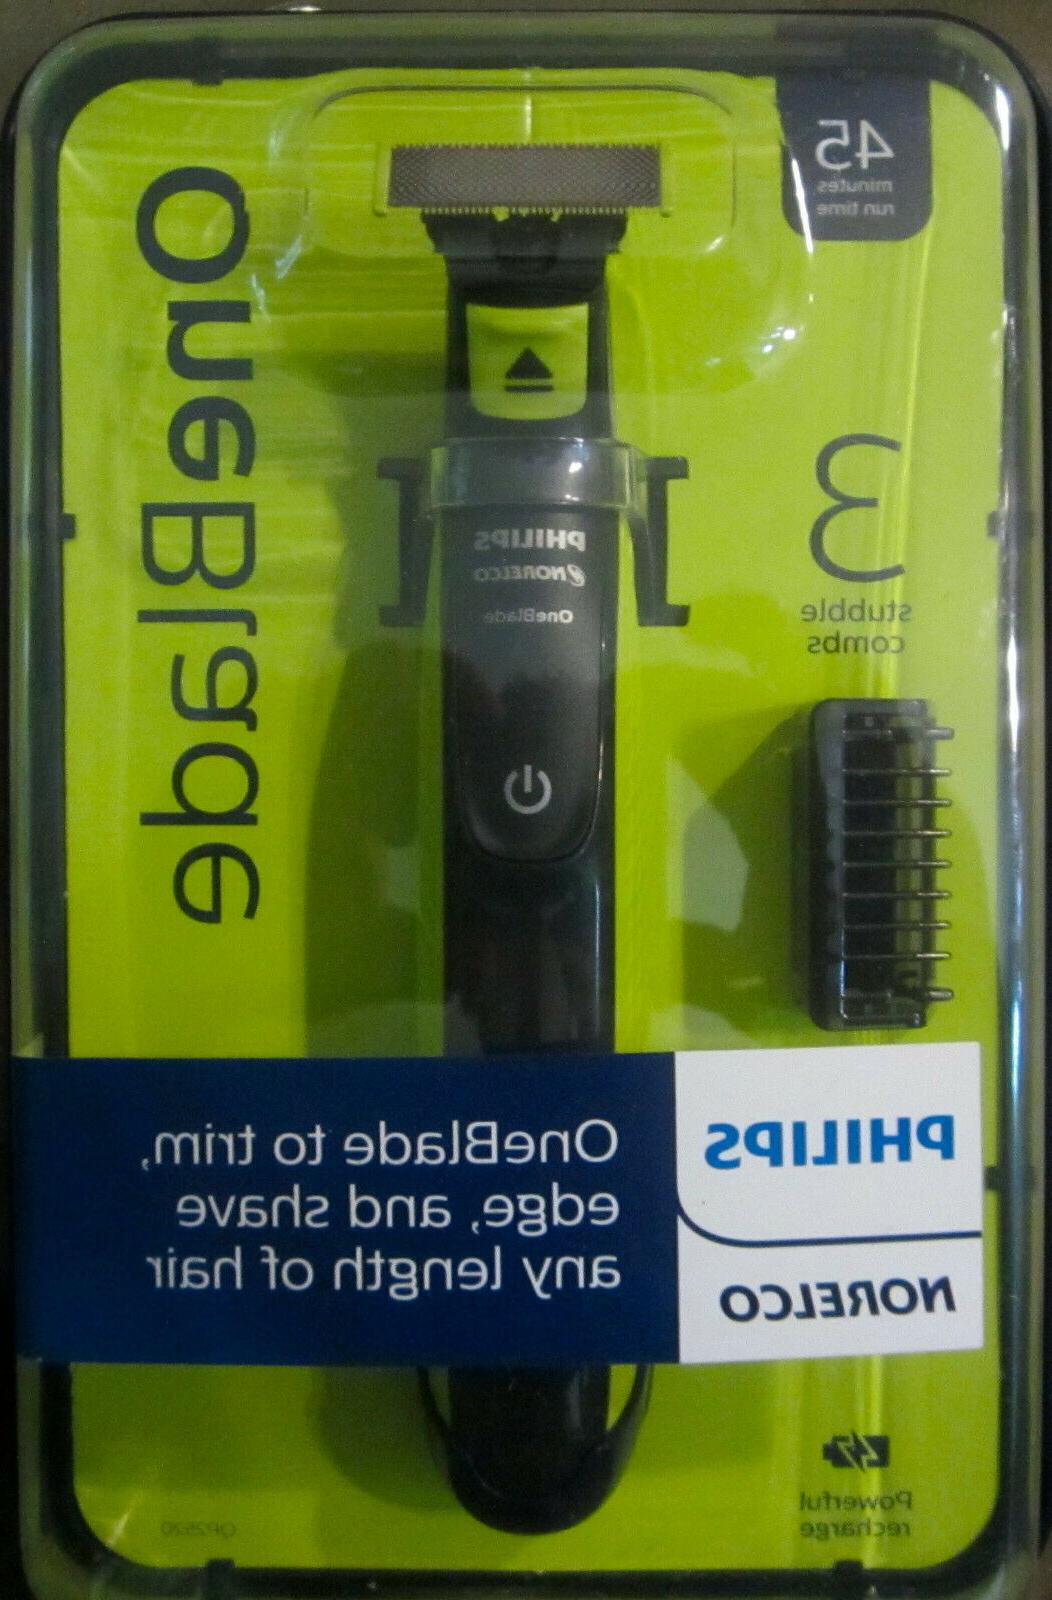 Philips Norelco OneBlade hybrid electric trimmer and shaver,